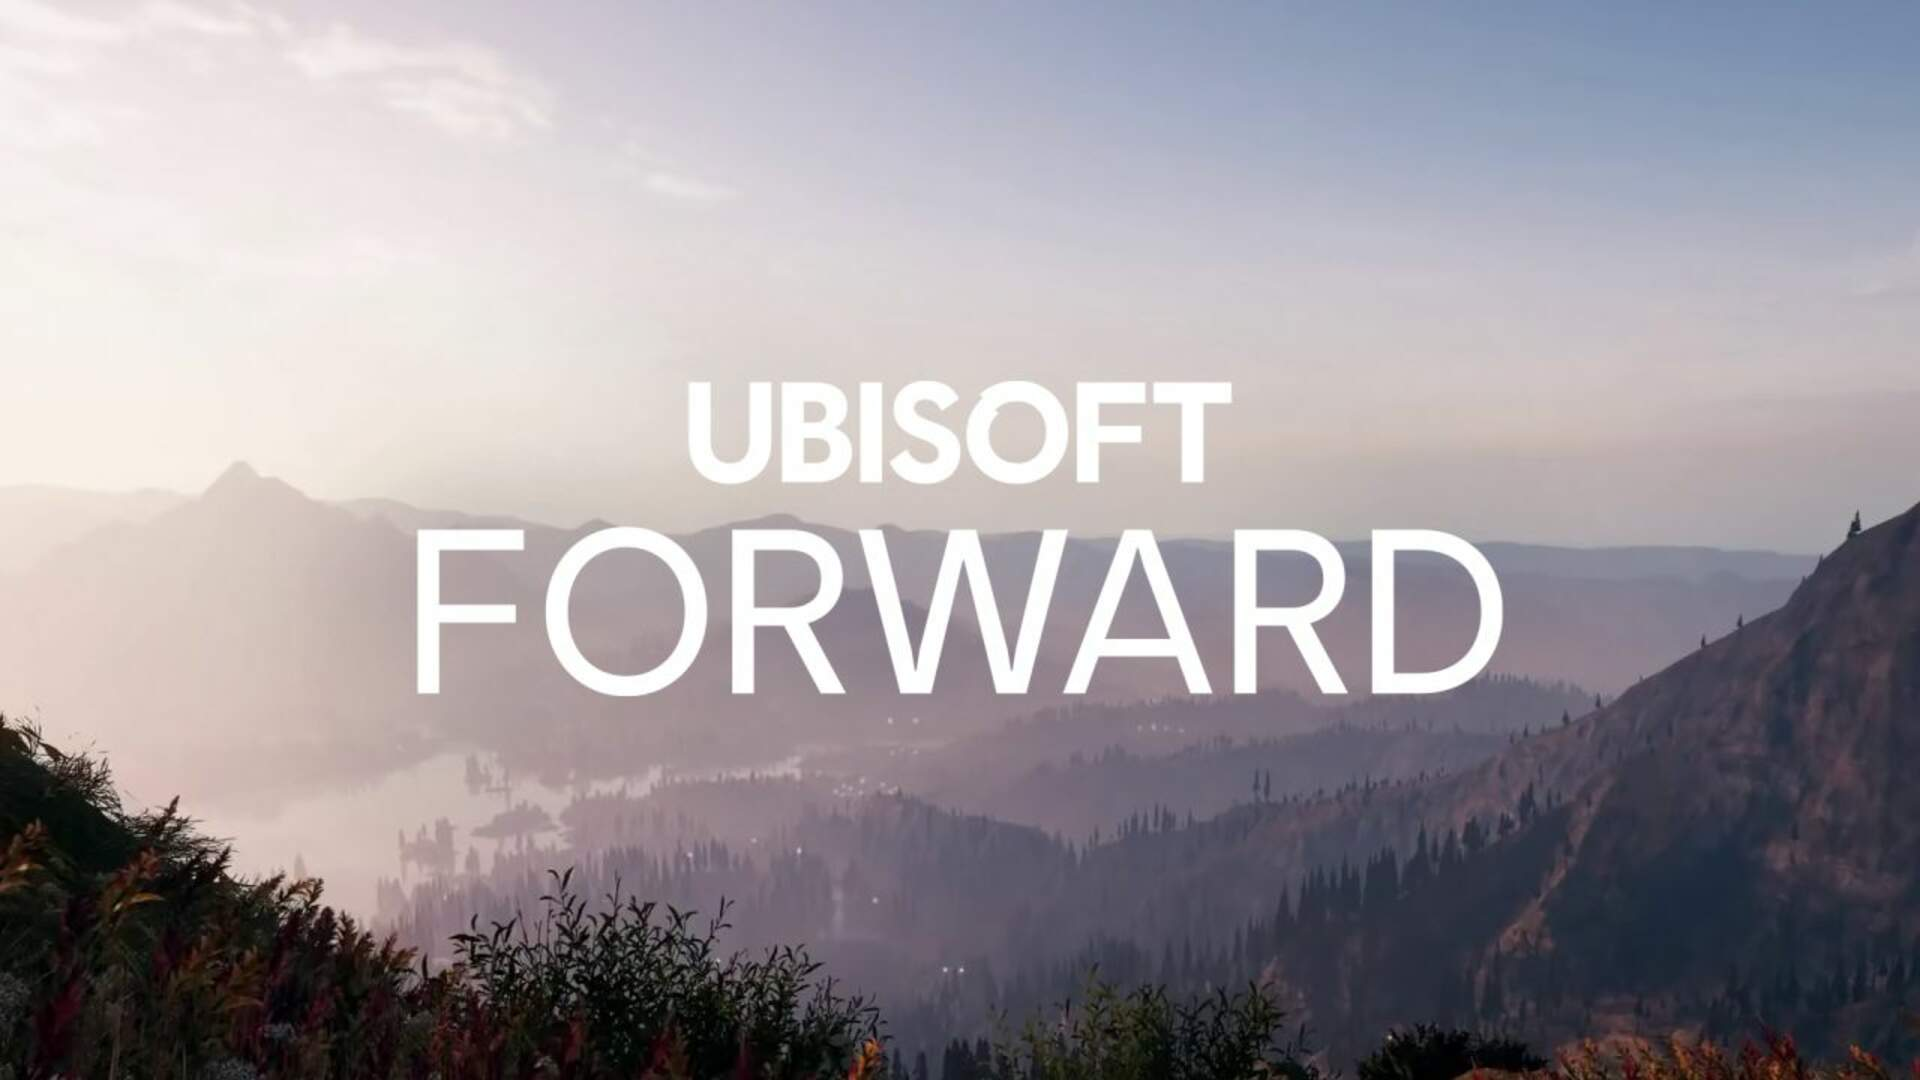 The Next Ubisoft Forward Presentation Is Happening in September